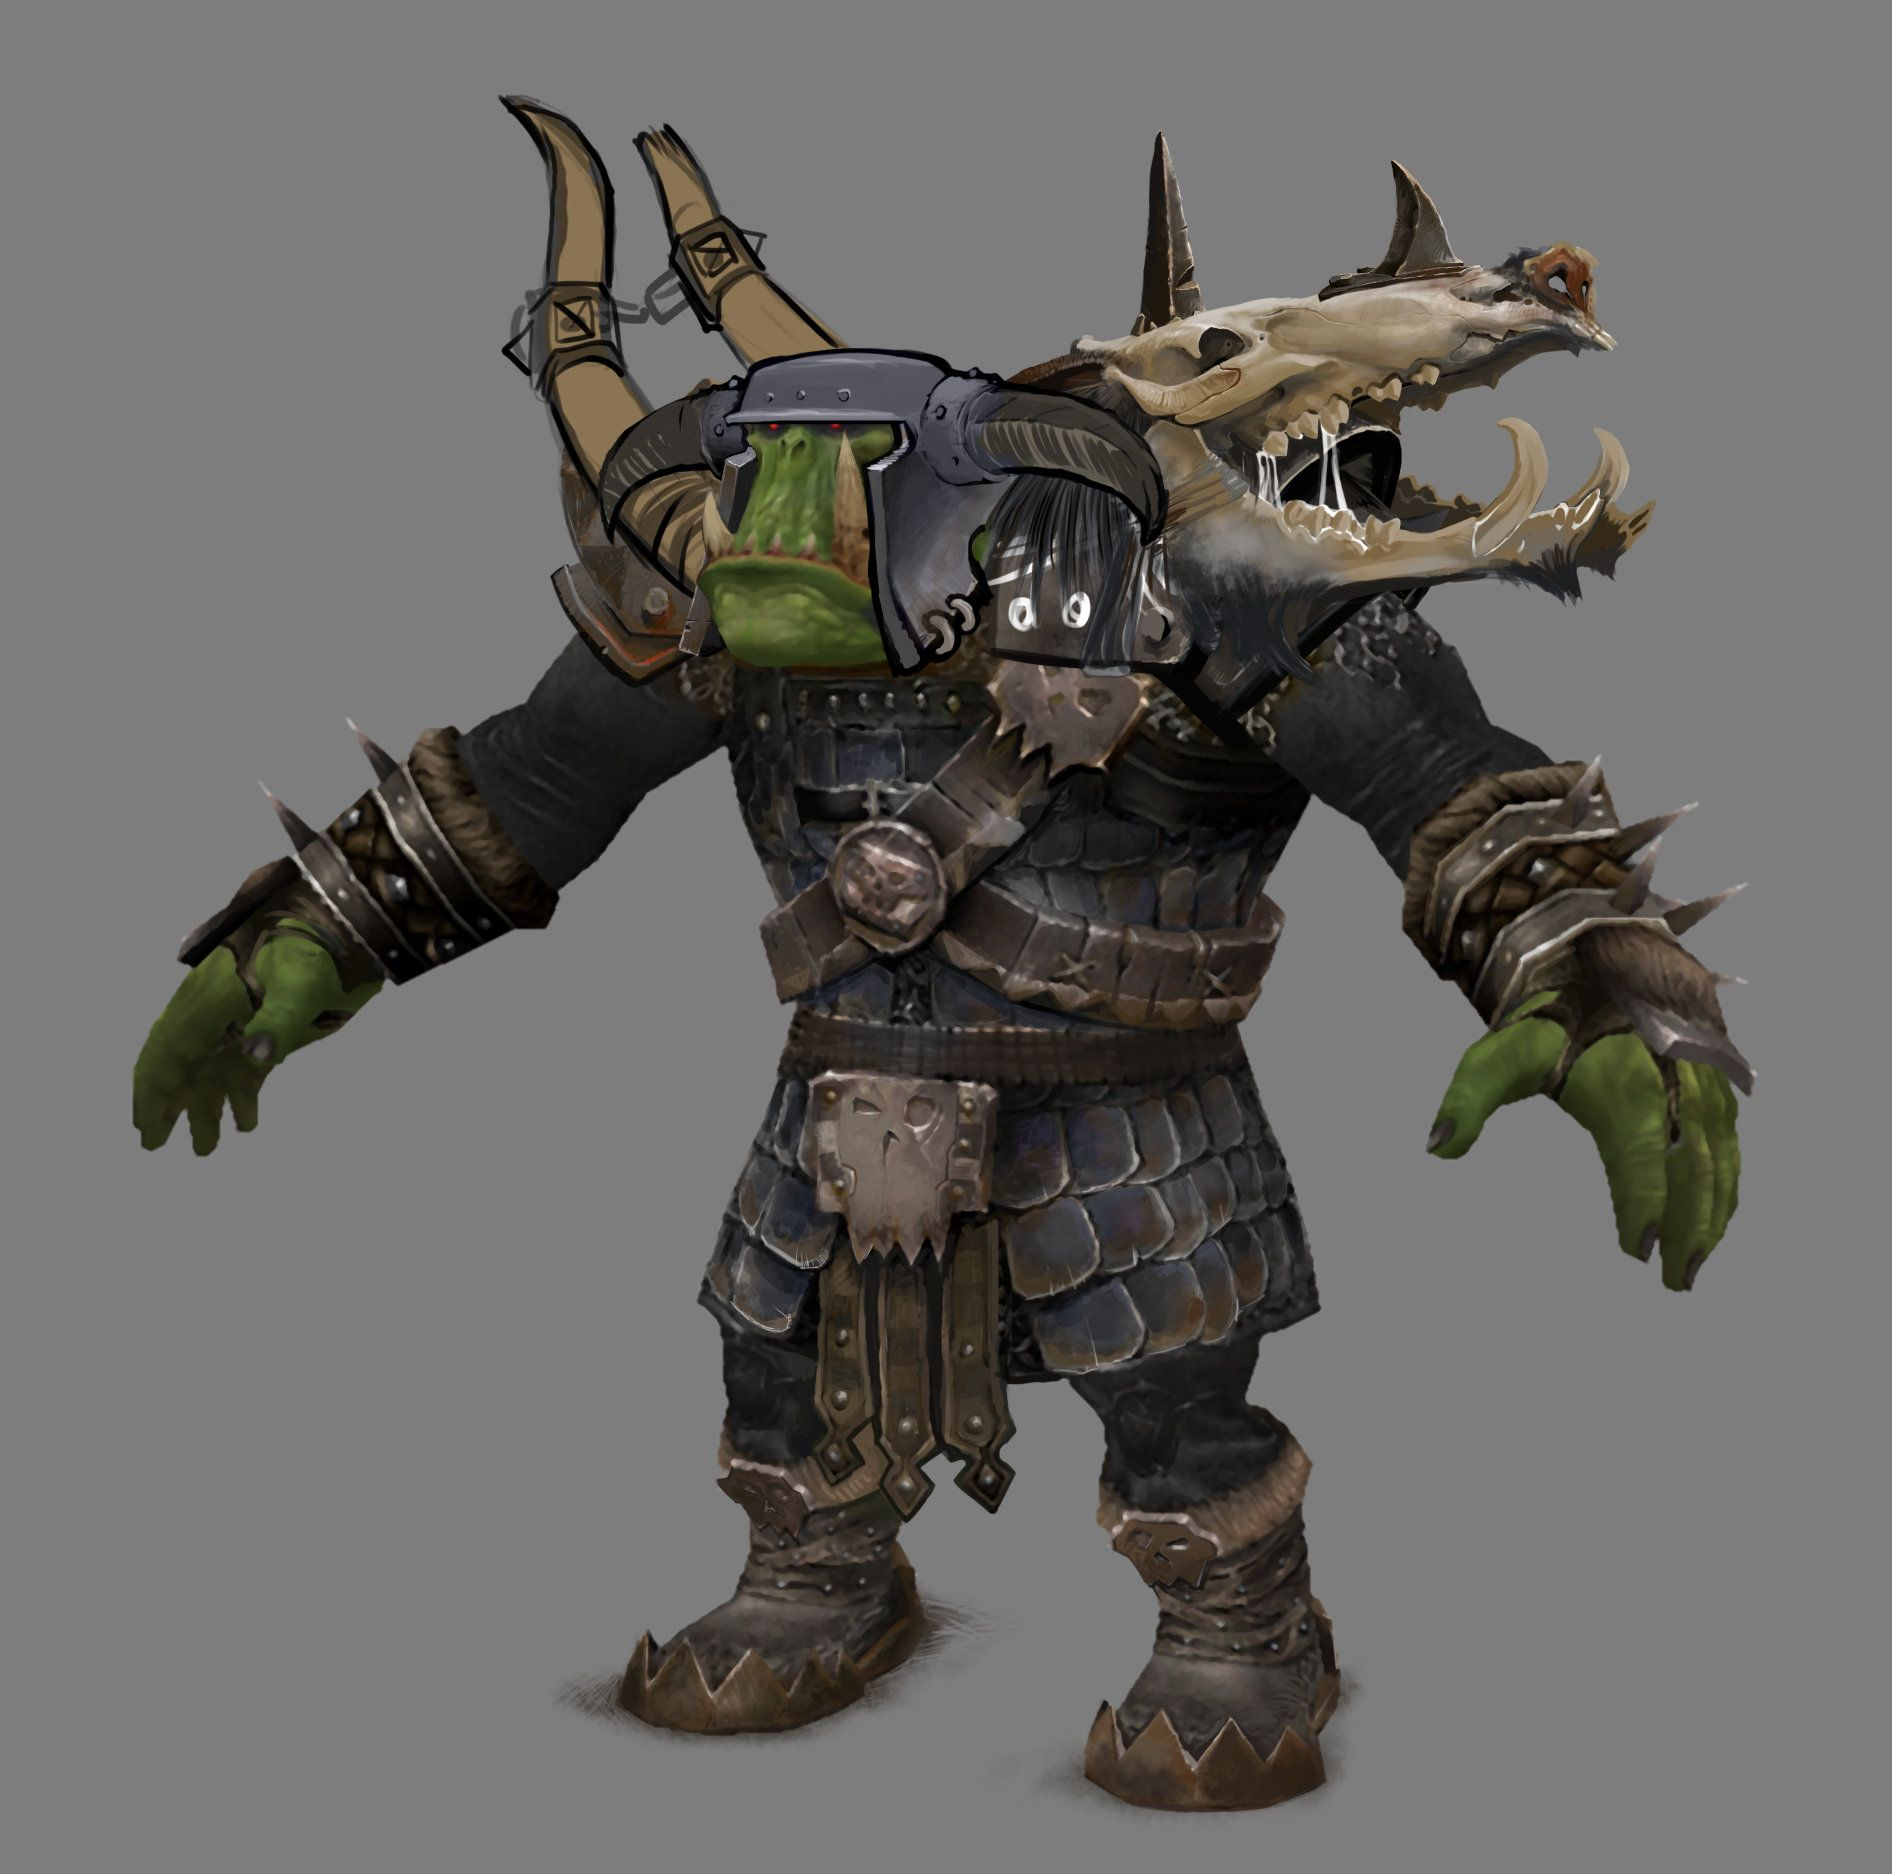 Orc armor